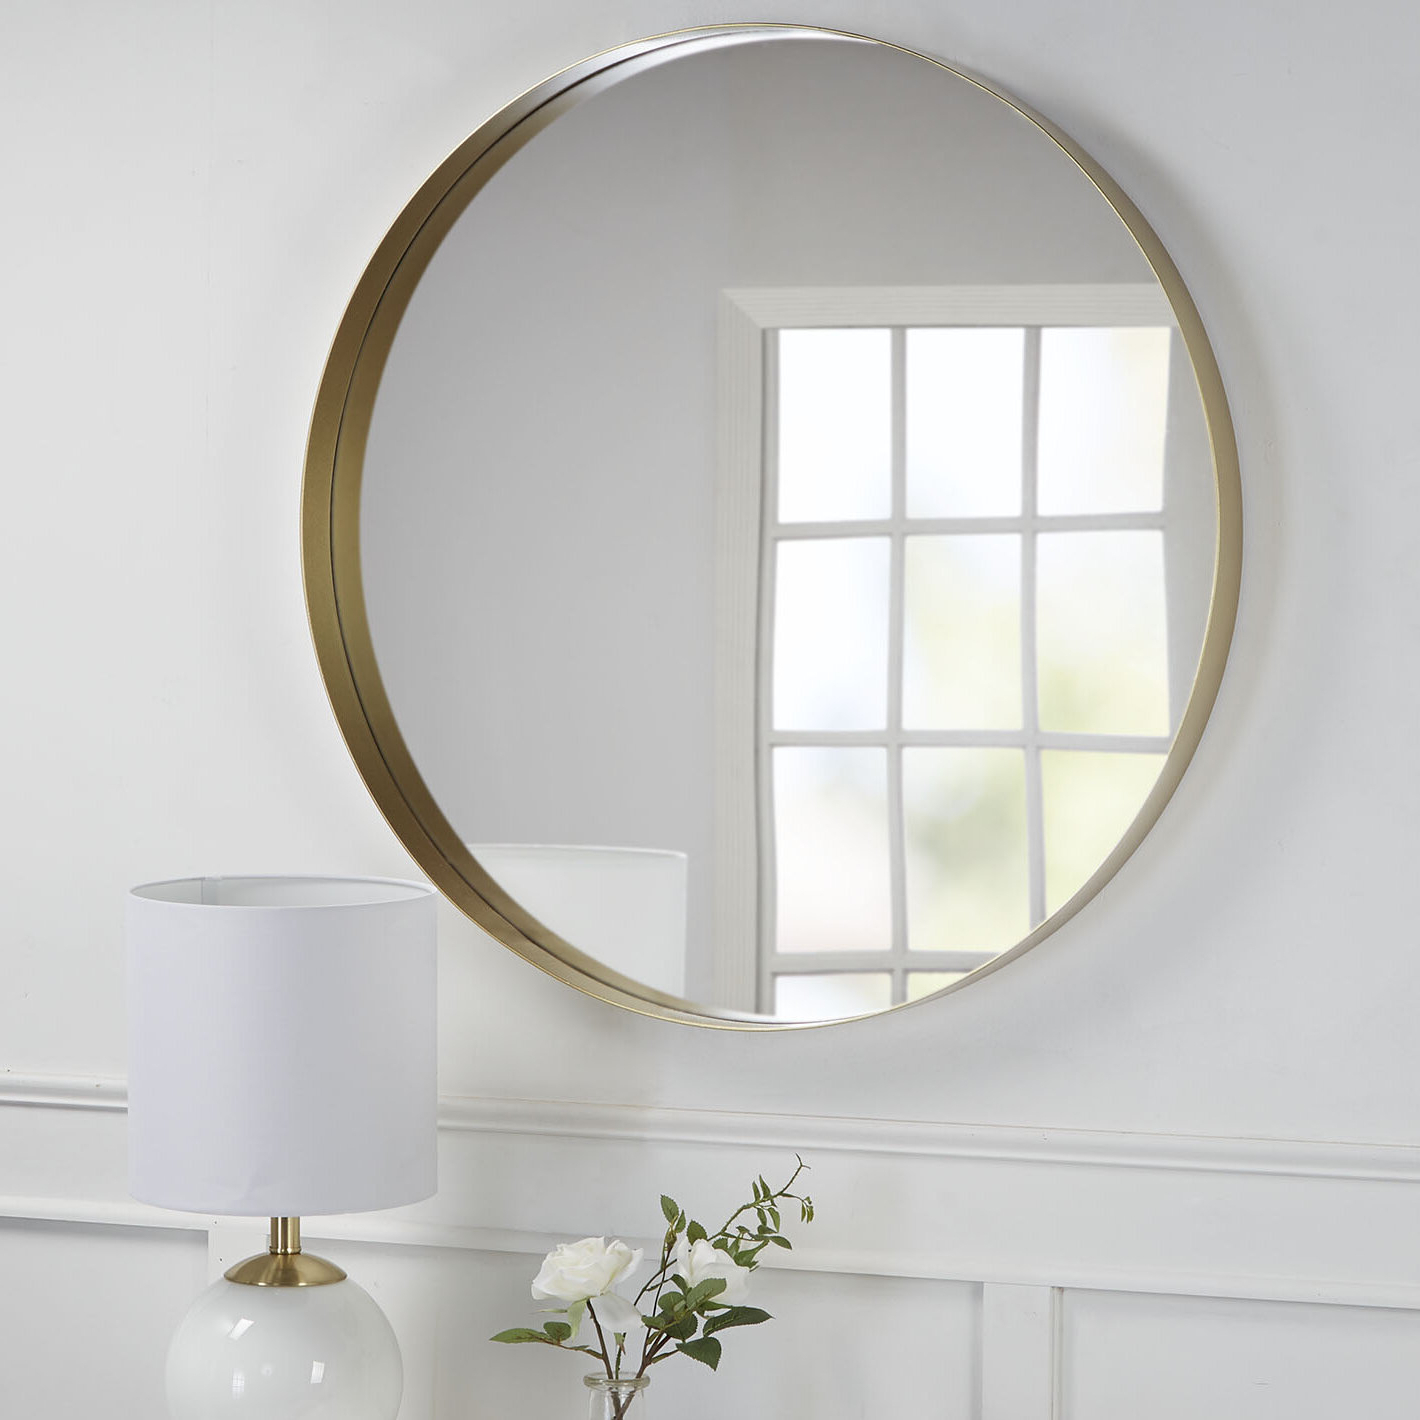 Circular Wall Mirrors With Famous Golightly Round Wall Mirror (View 18 of 20)